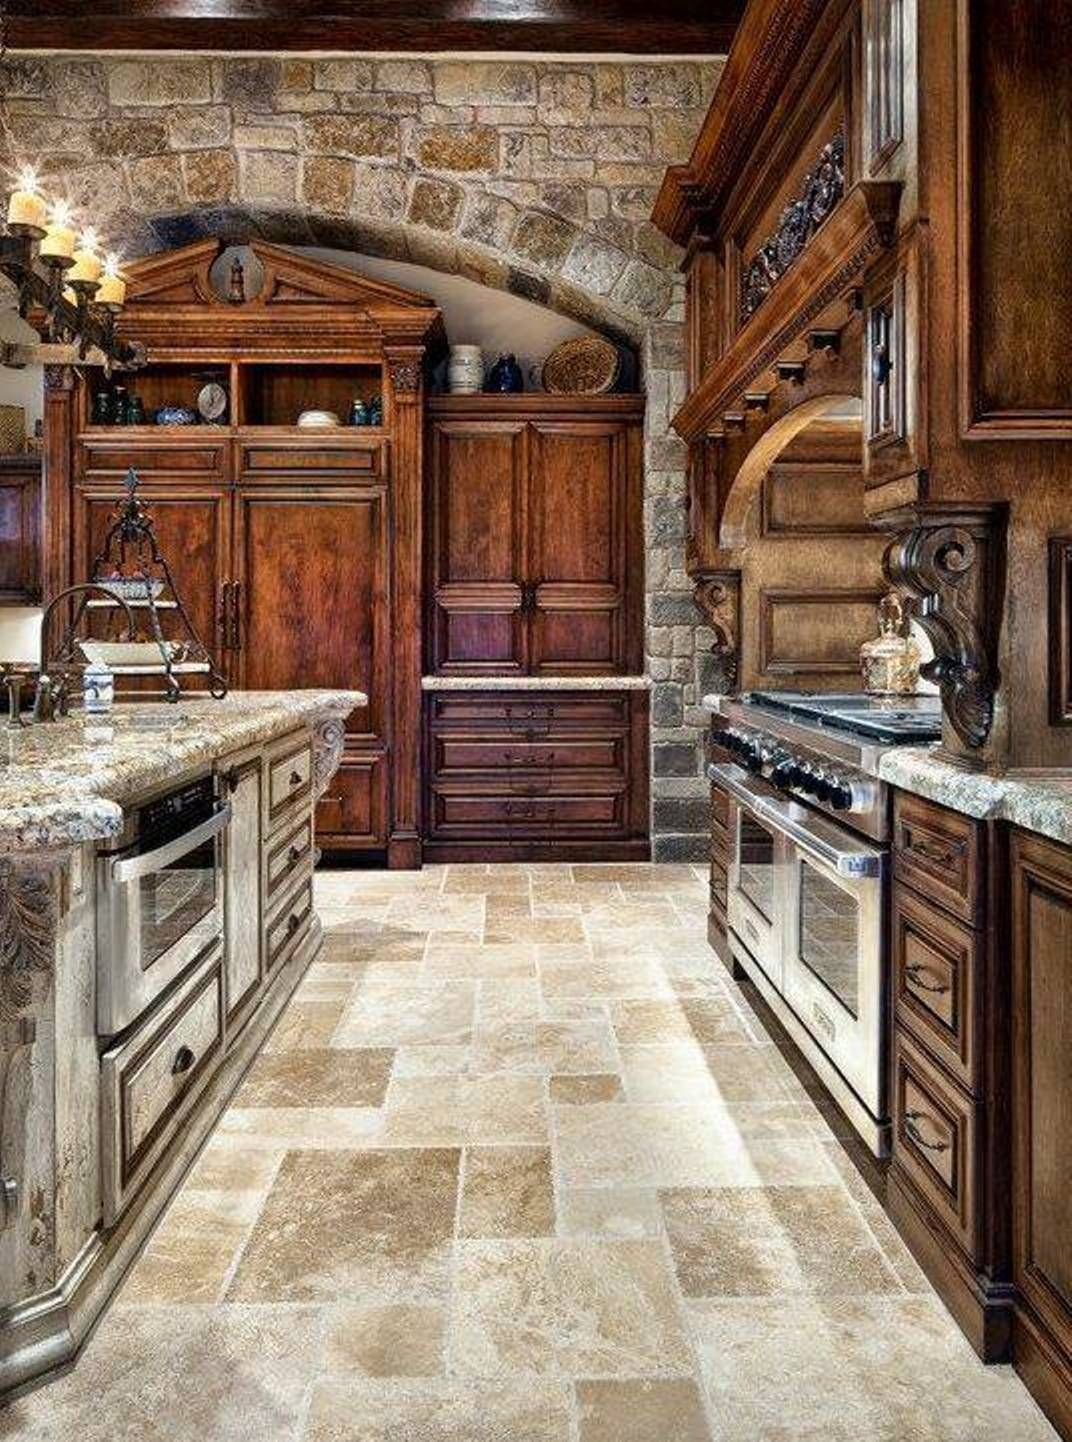 Old World Tuscan Themed Kitchen Style With Arched Brick Wall Decor Styles